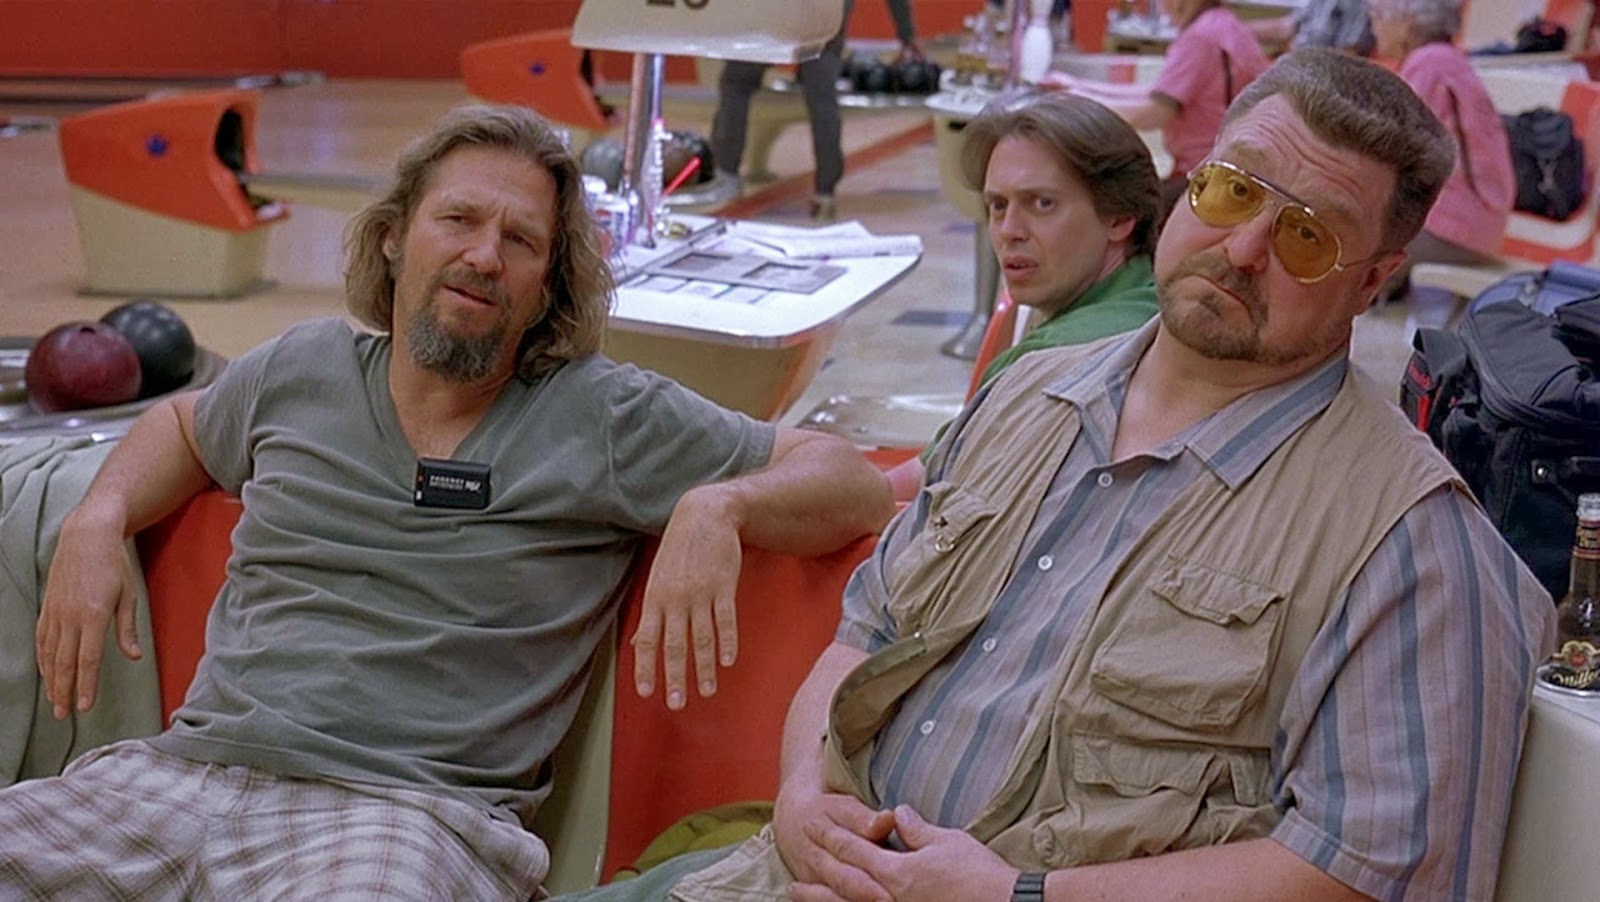 The Dude, Donny and Walter played by Jeff Bridges, Steve Buscemi and John Goodman respectively